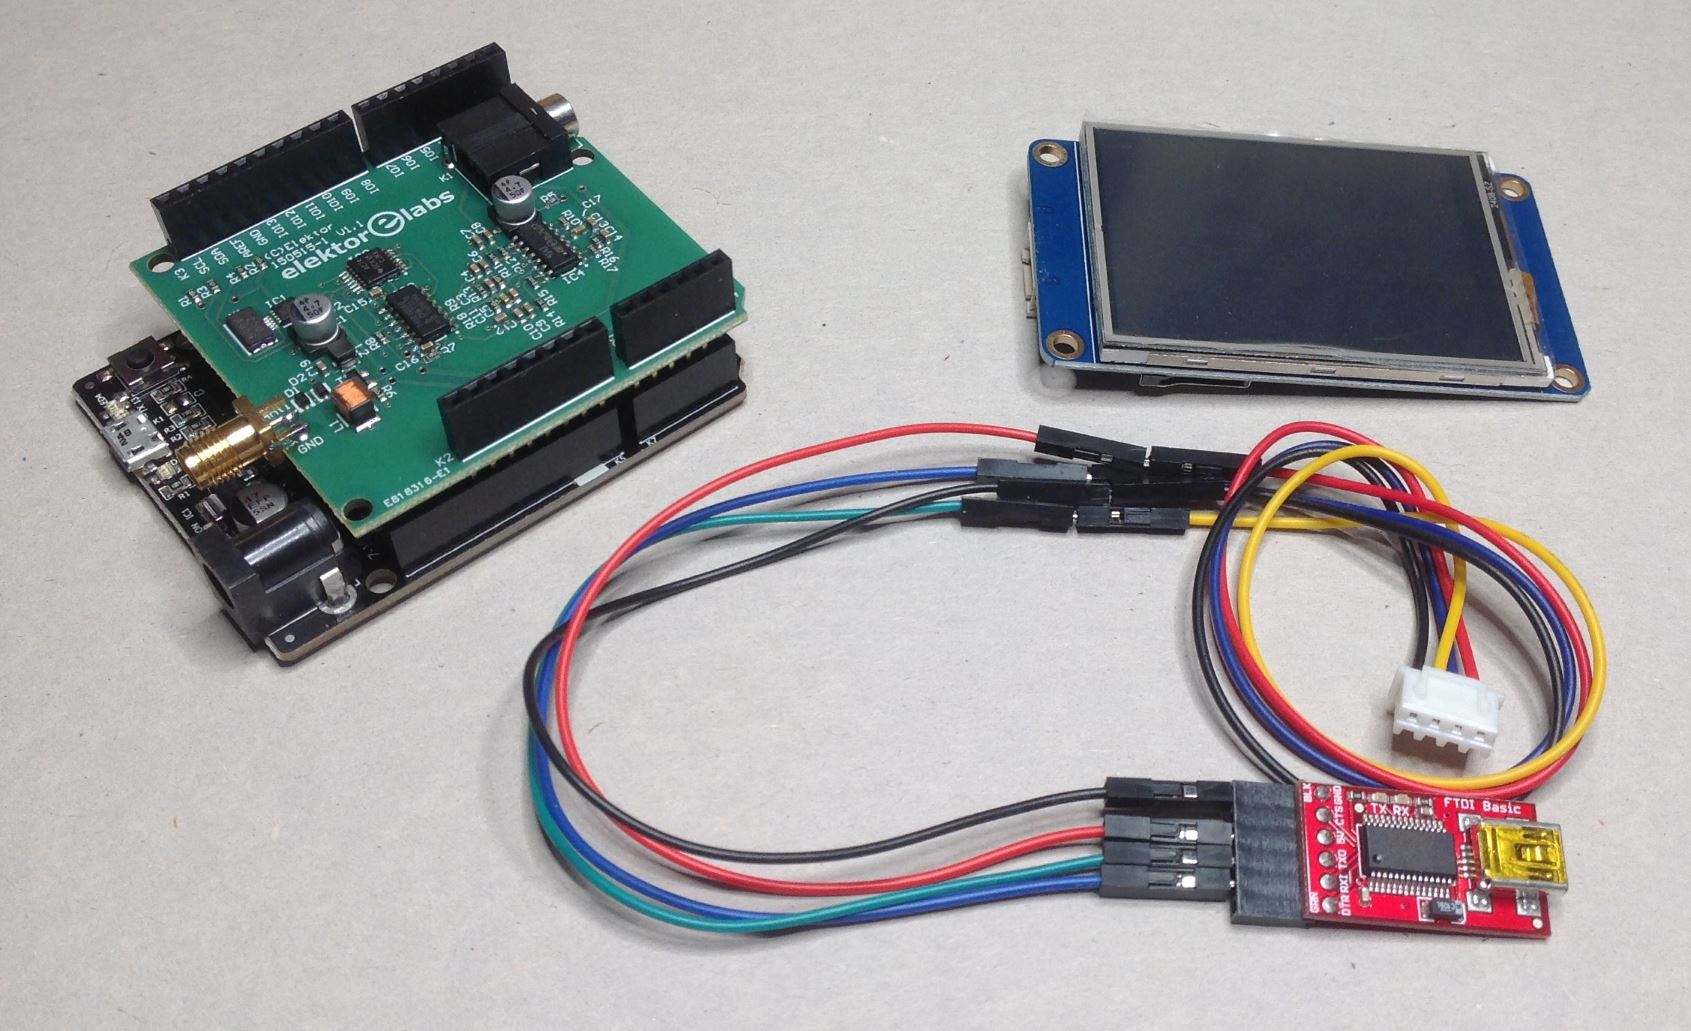 How to connect ws2812b to arduino